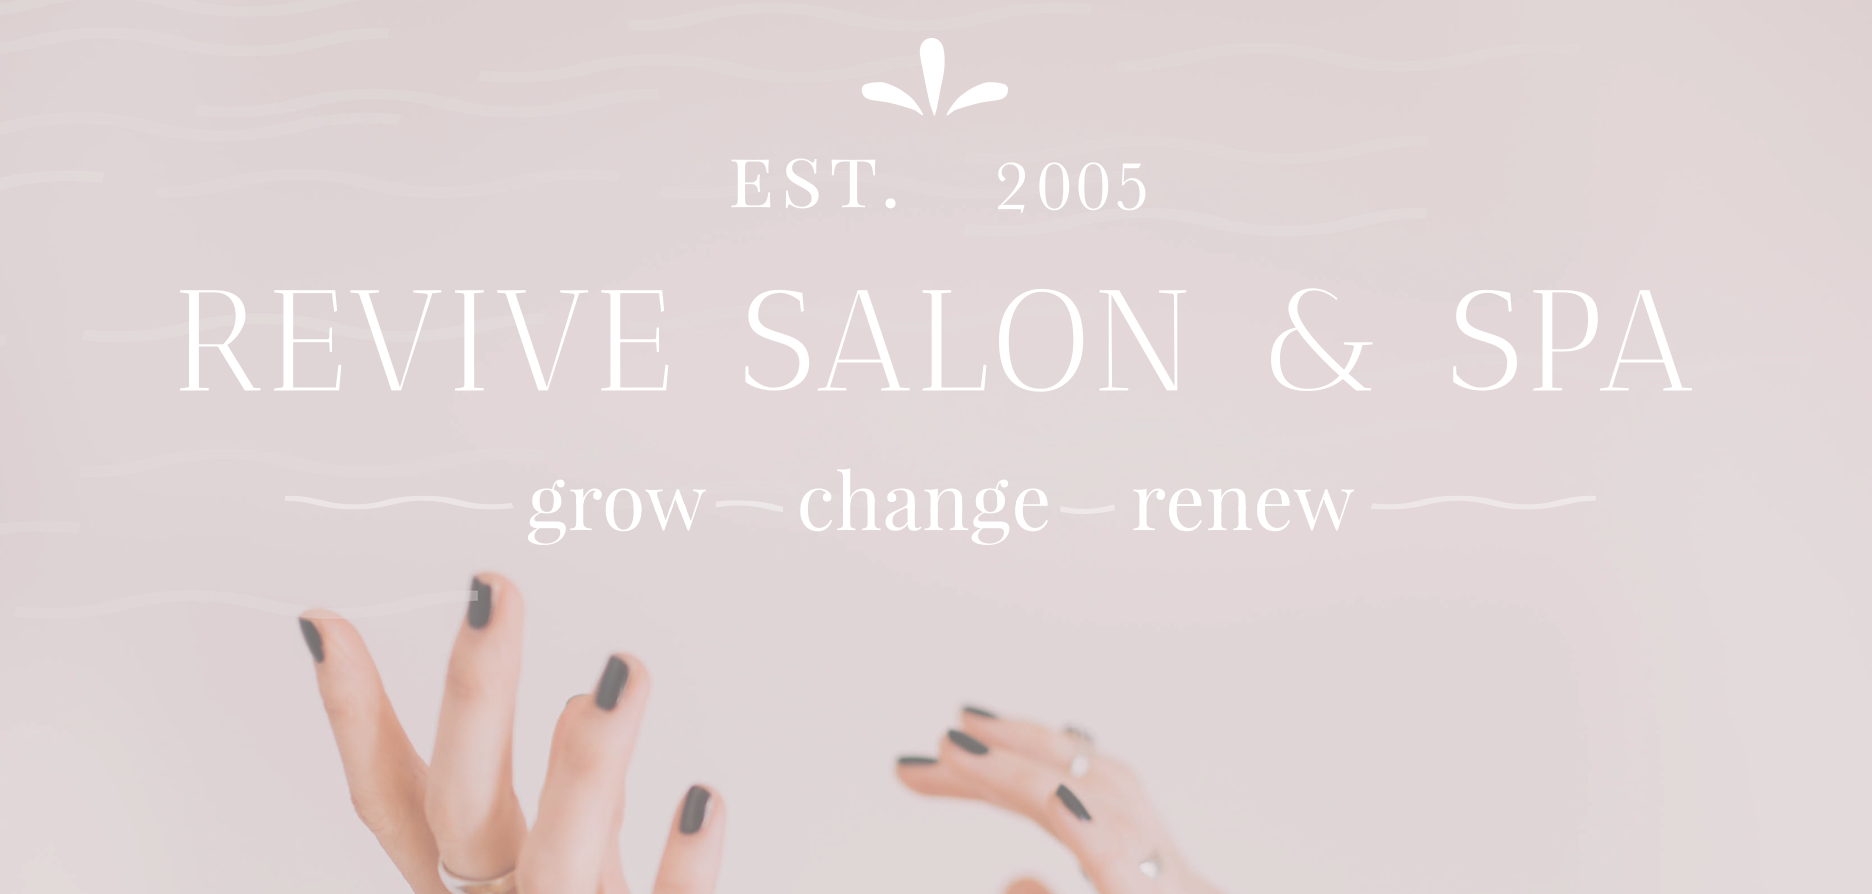 Revive-salon-spa-sydney-ns